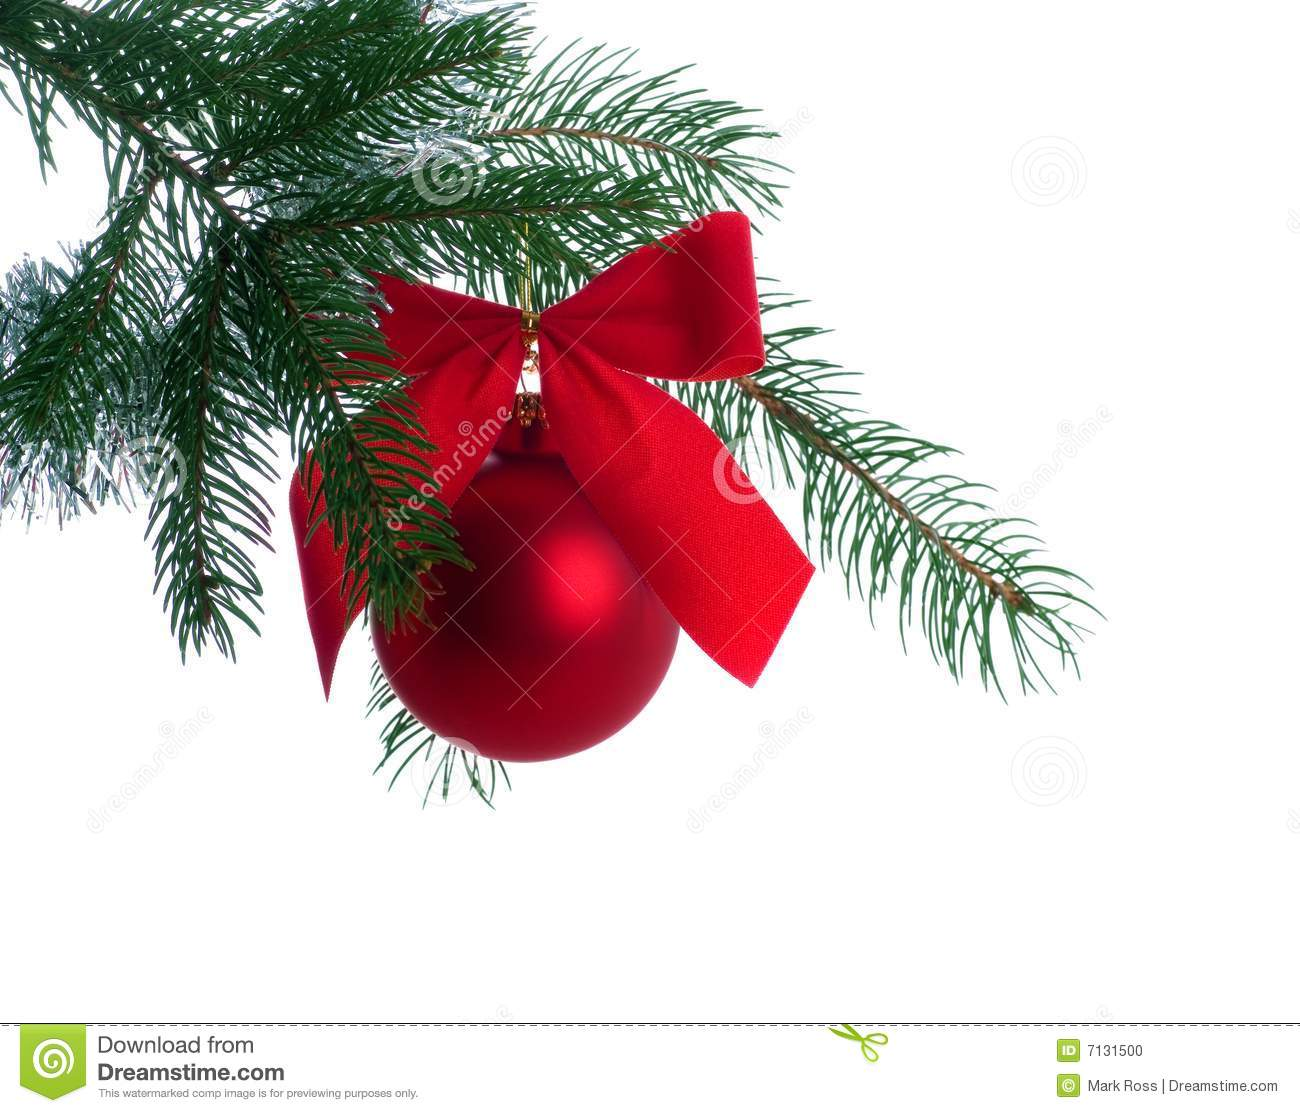 Christmas Decorations With Tree Branches: Christmas Decoration On Tree Branch Stock Photo